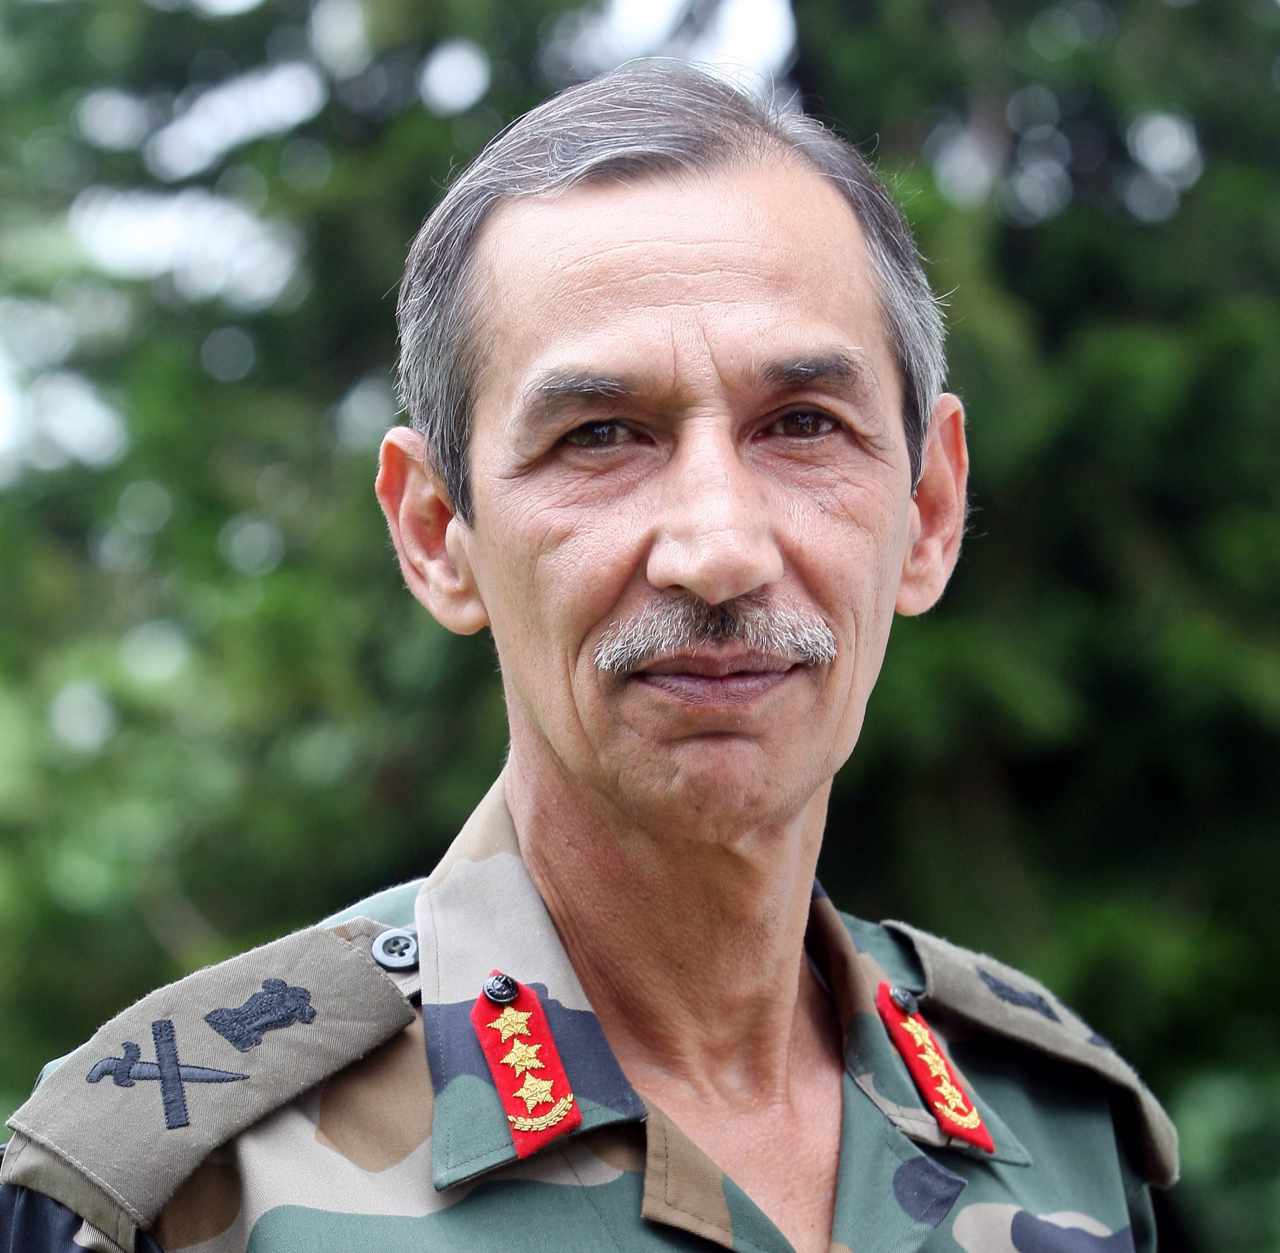 "Lt General DS Hooda (Retd), the commanding officer of the Northern Army Command who oversaw the surgical strikes in 2016, said that the IAF must have planned it well, selected routes, used sophisticated jammers. ""IAF is much superior to Pakistan as far as technology is concerned. I think we are more than adequately prepared to retaliate. My thinking is that it's not going to be anything big from their side,"" Hooda told News18. (Image: Wikipedia)"